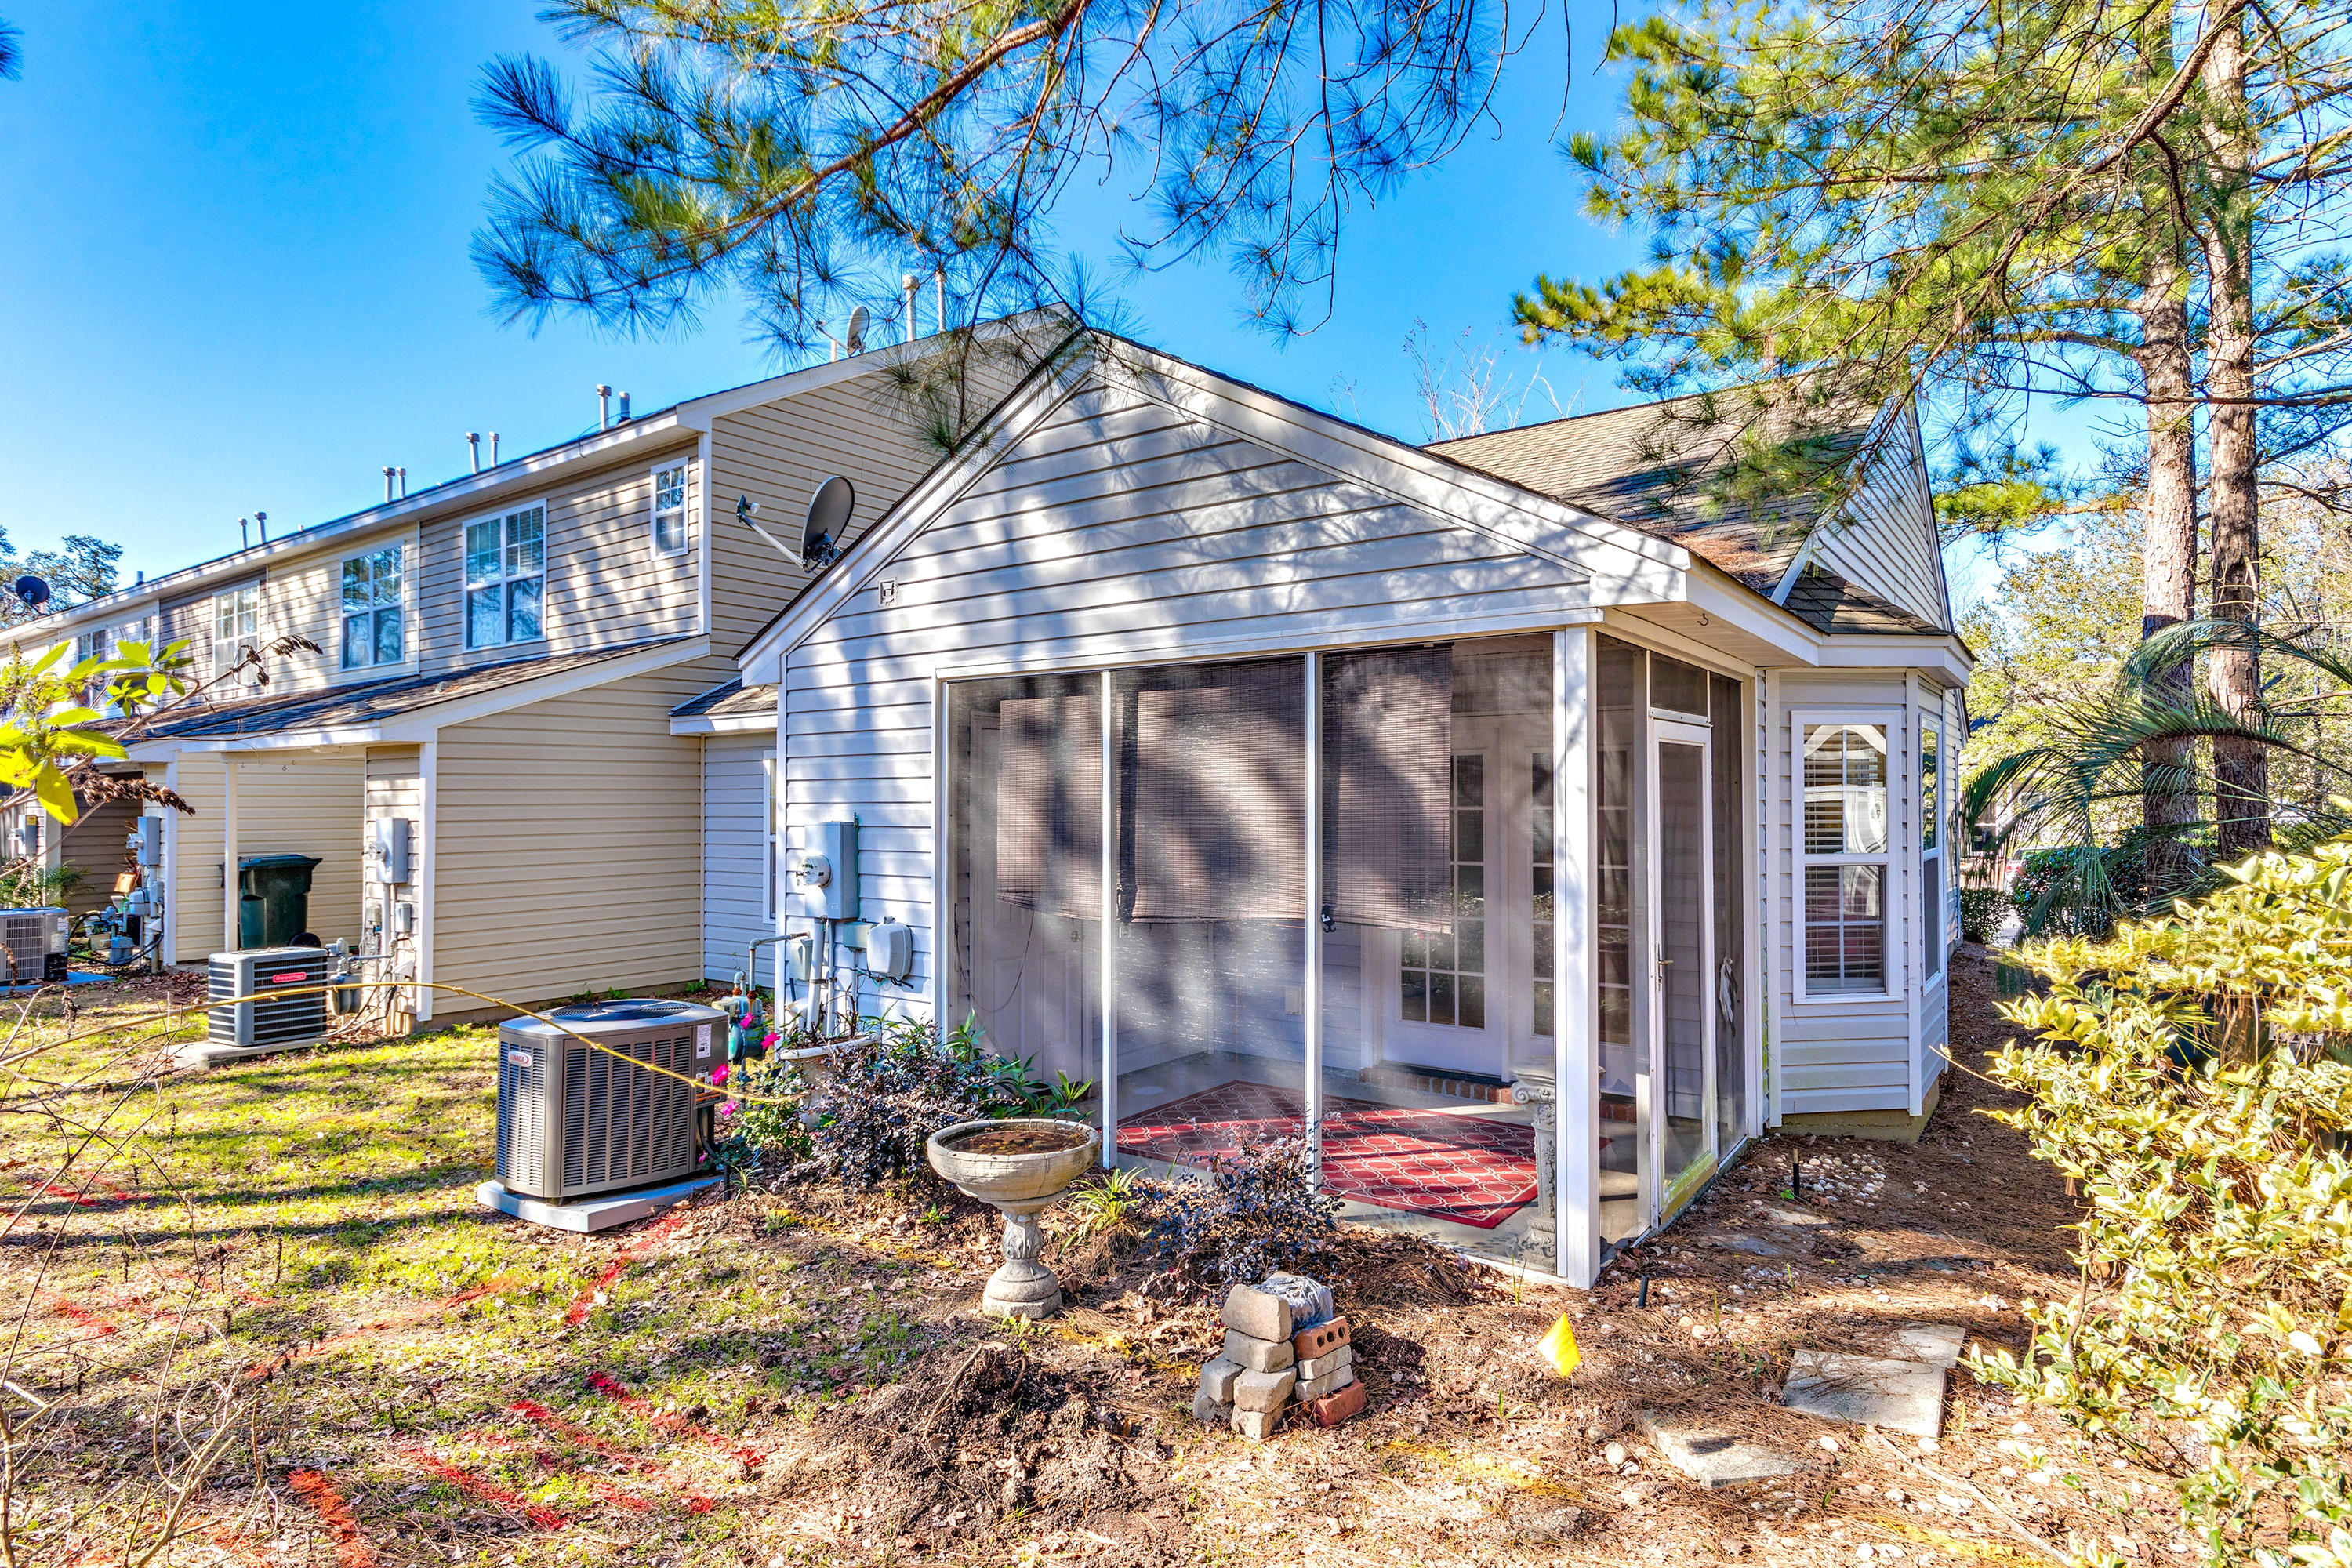 Persimmon Hill Townhouses Homes For Sale - 111 Taylor, Goose Creek, SC - 25